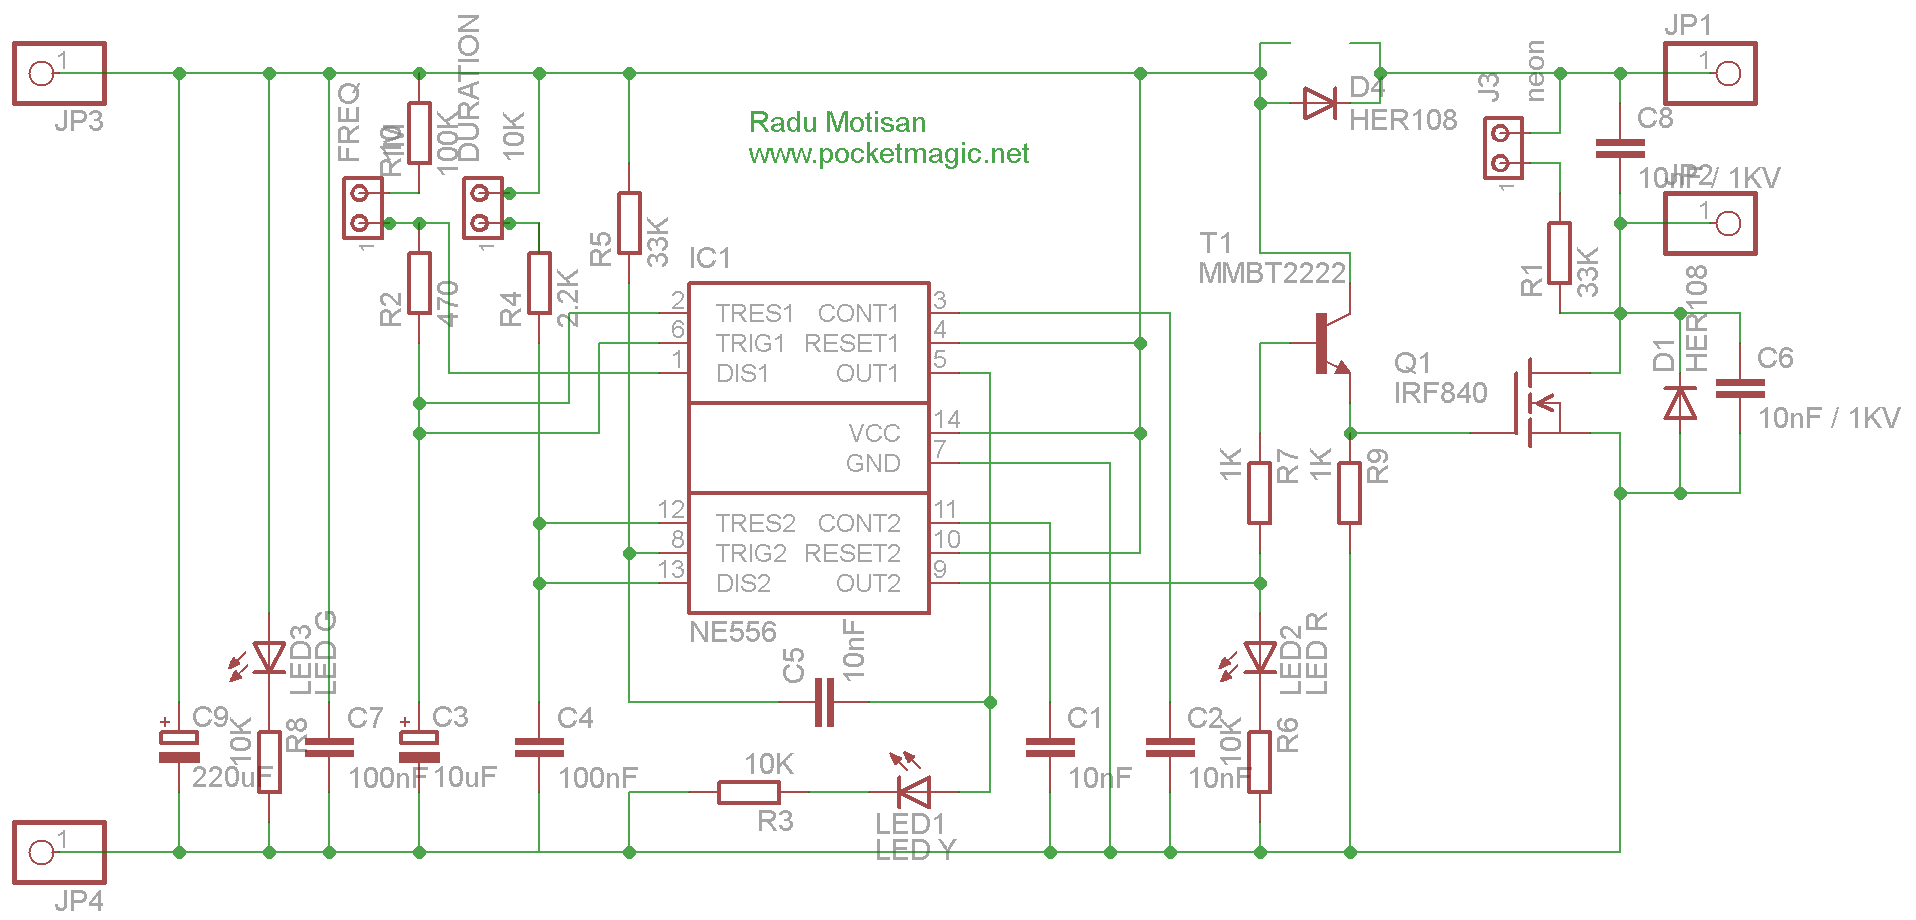 Electric Fence Circuit For Perimeter Protection  U2013 Pocketmagic